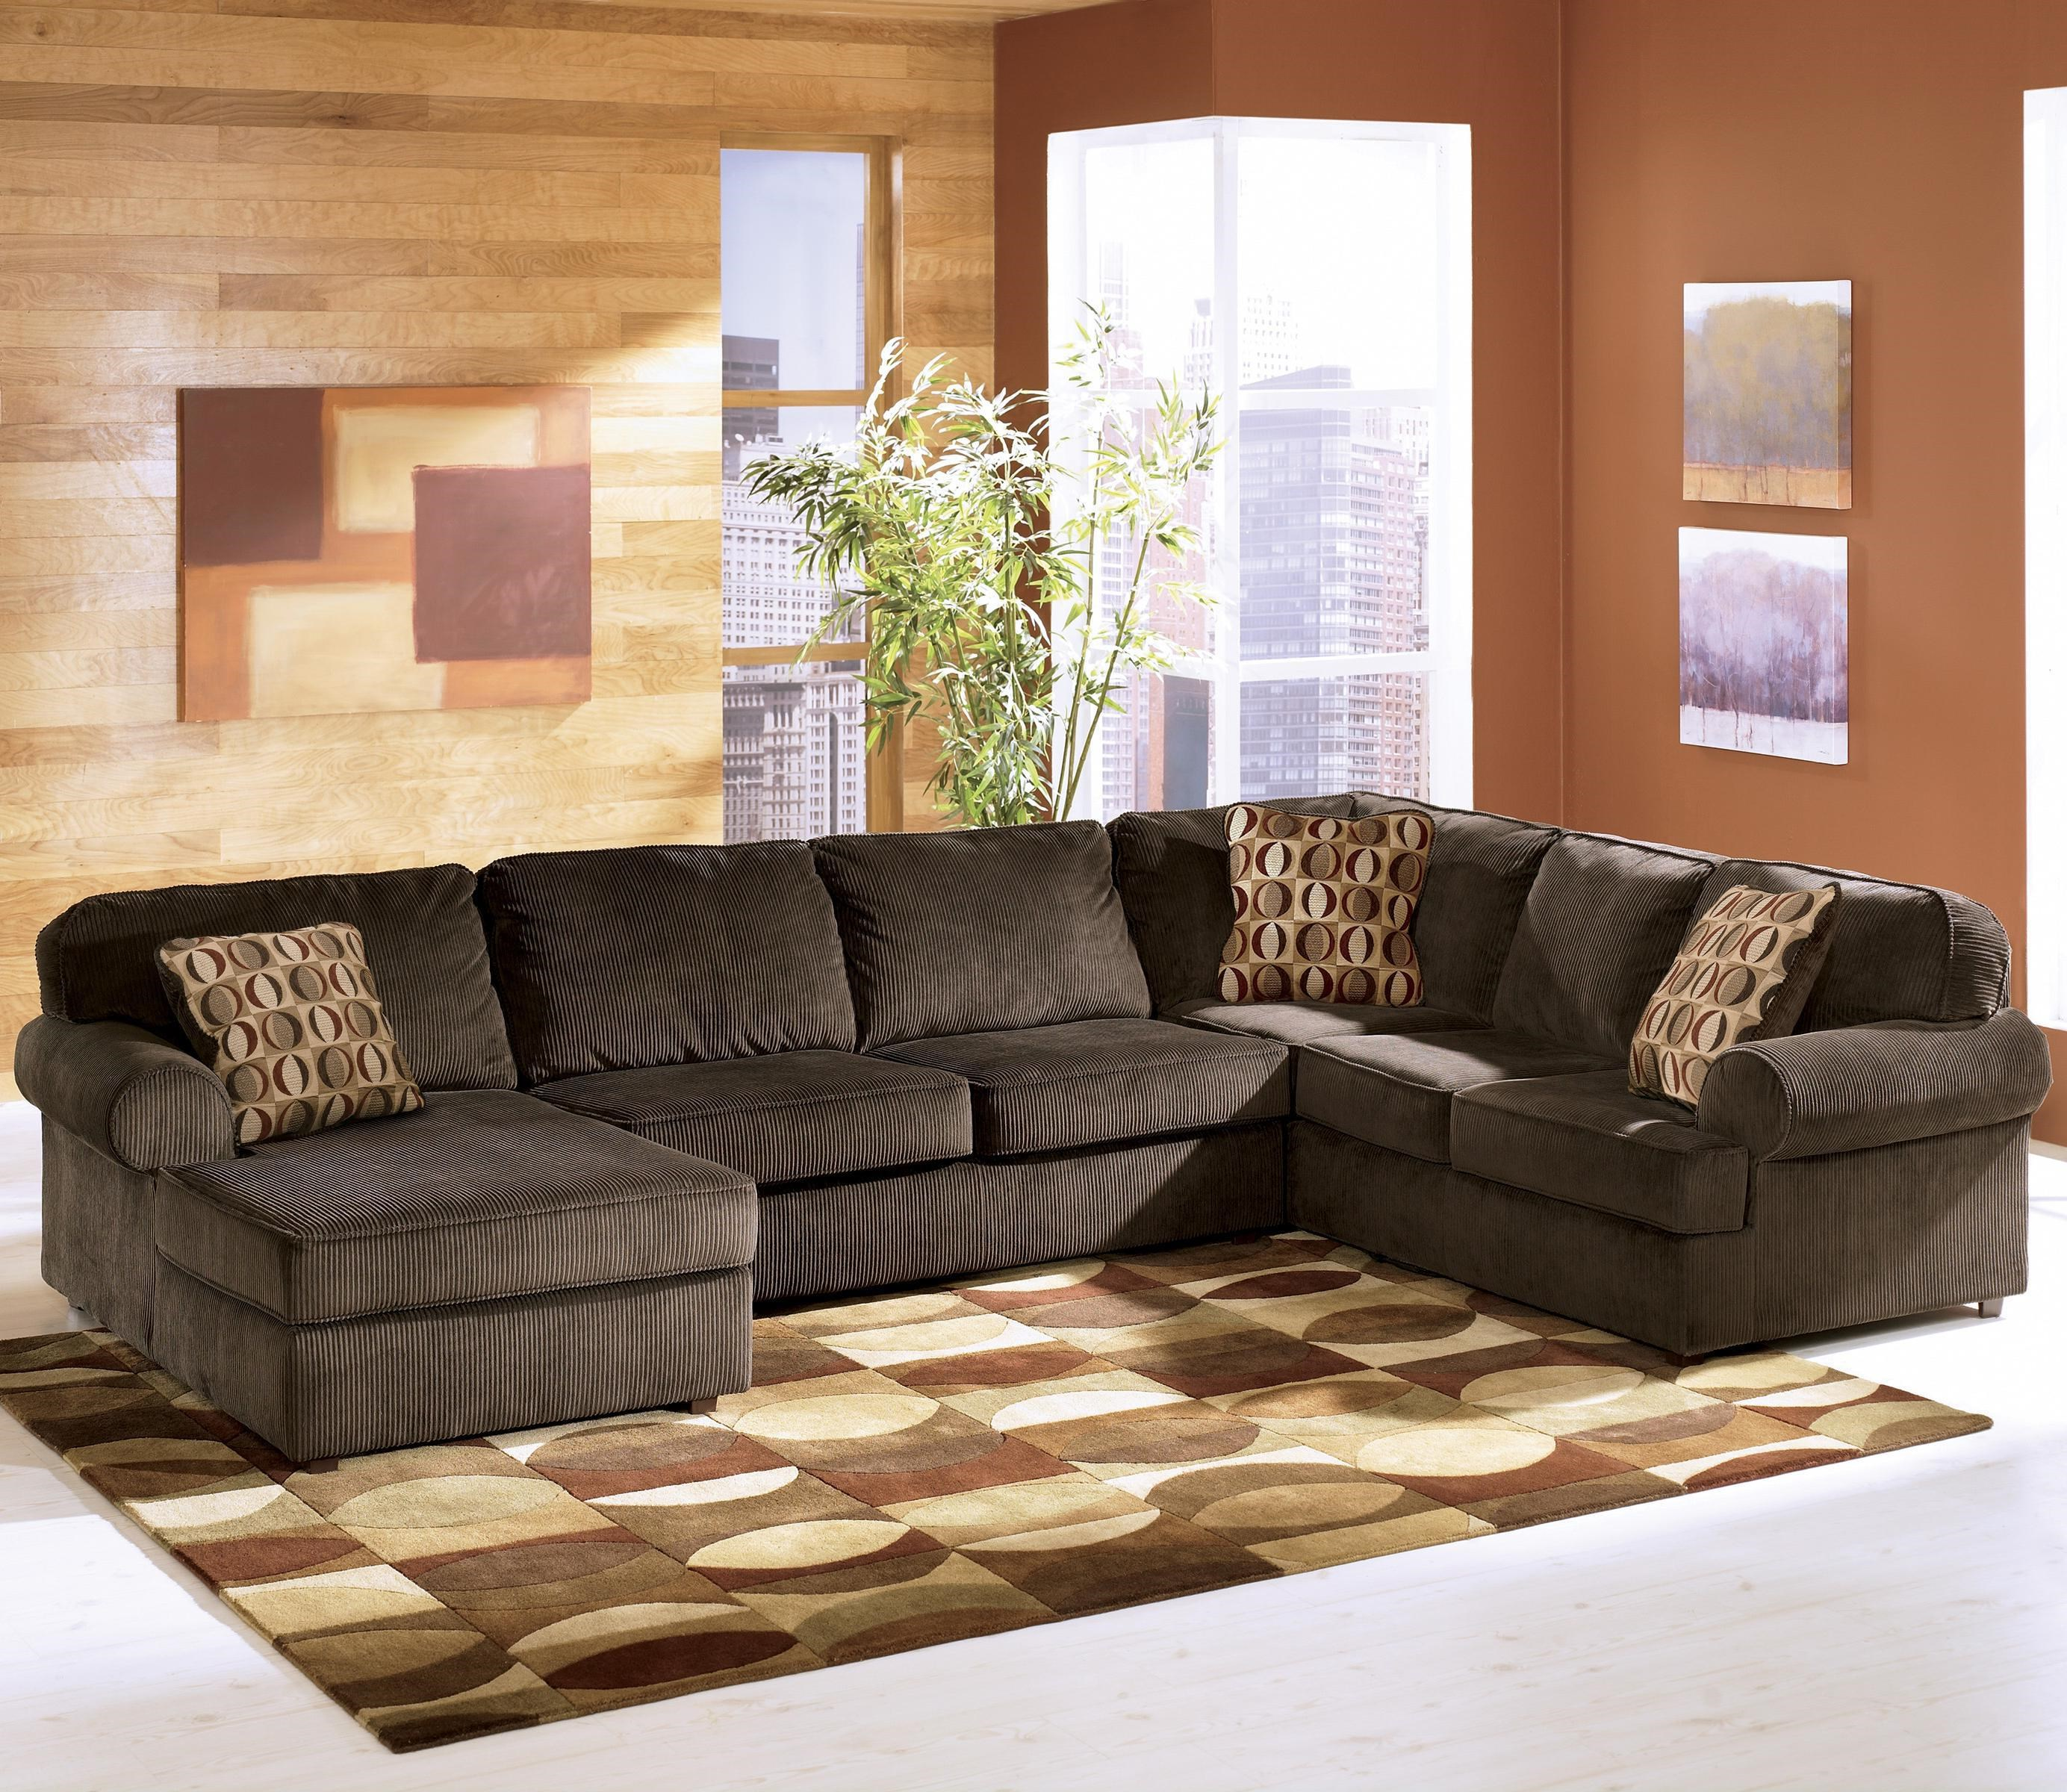 Nice Ashley Furniture Vista   Chocolate Casual 3 Piece Sectional With Left Chaise